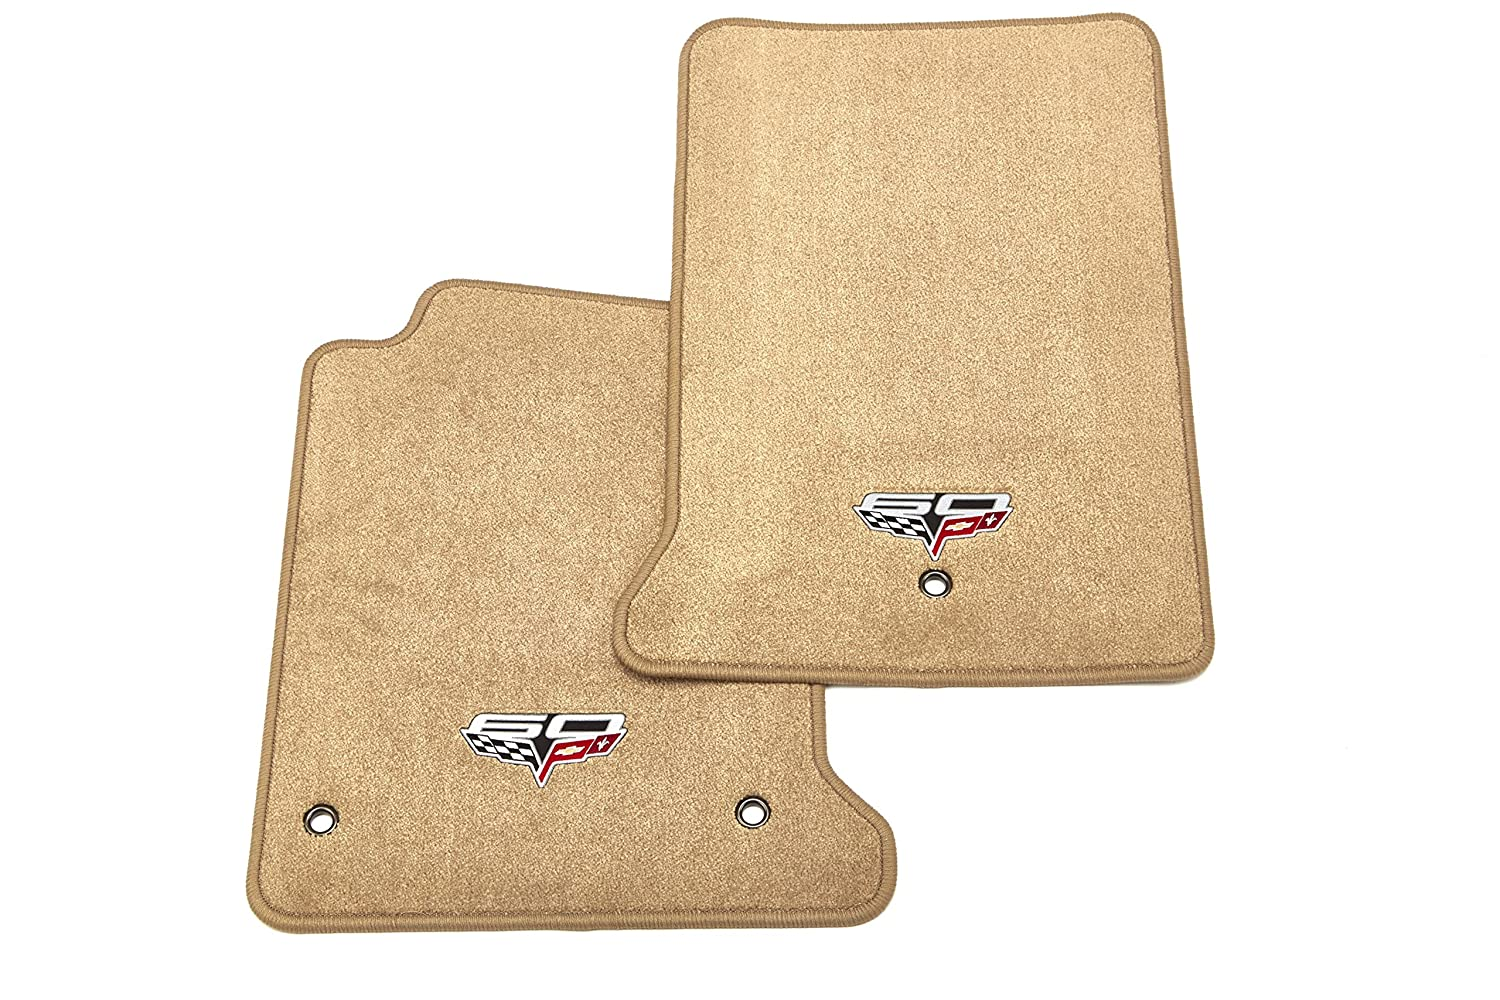 GM Accessories 22927123 Front Carpeted Floor Mats in Cashmere with 60th Anniversary Crossed Flags Logo General Motors